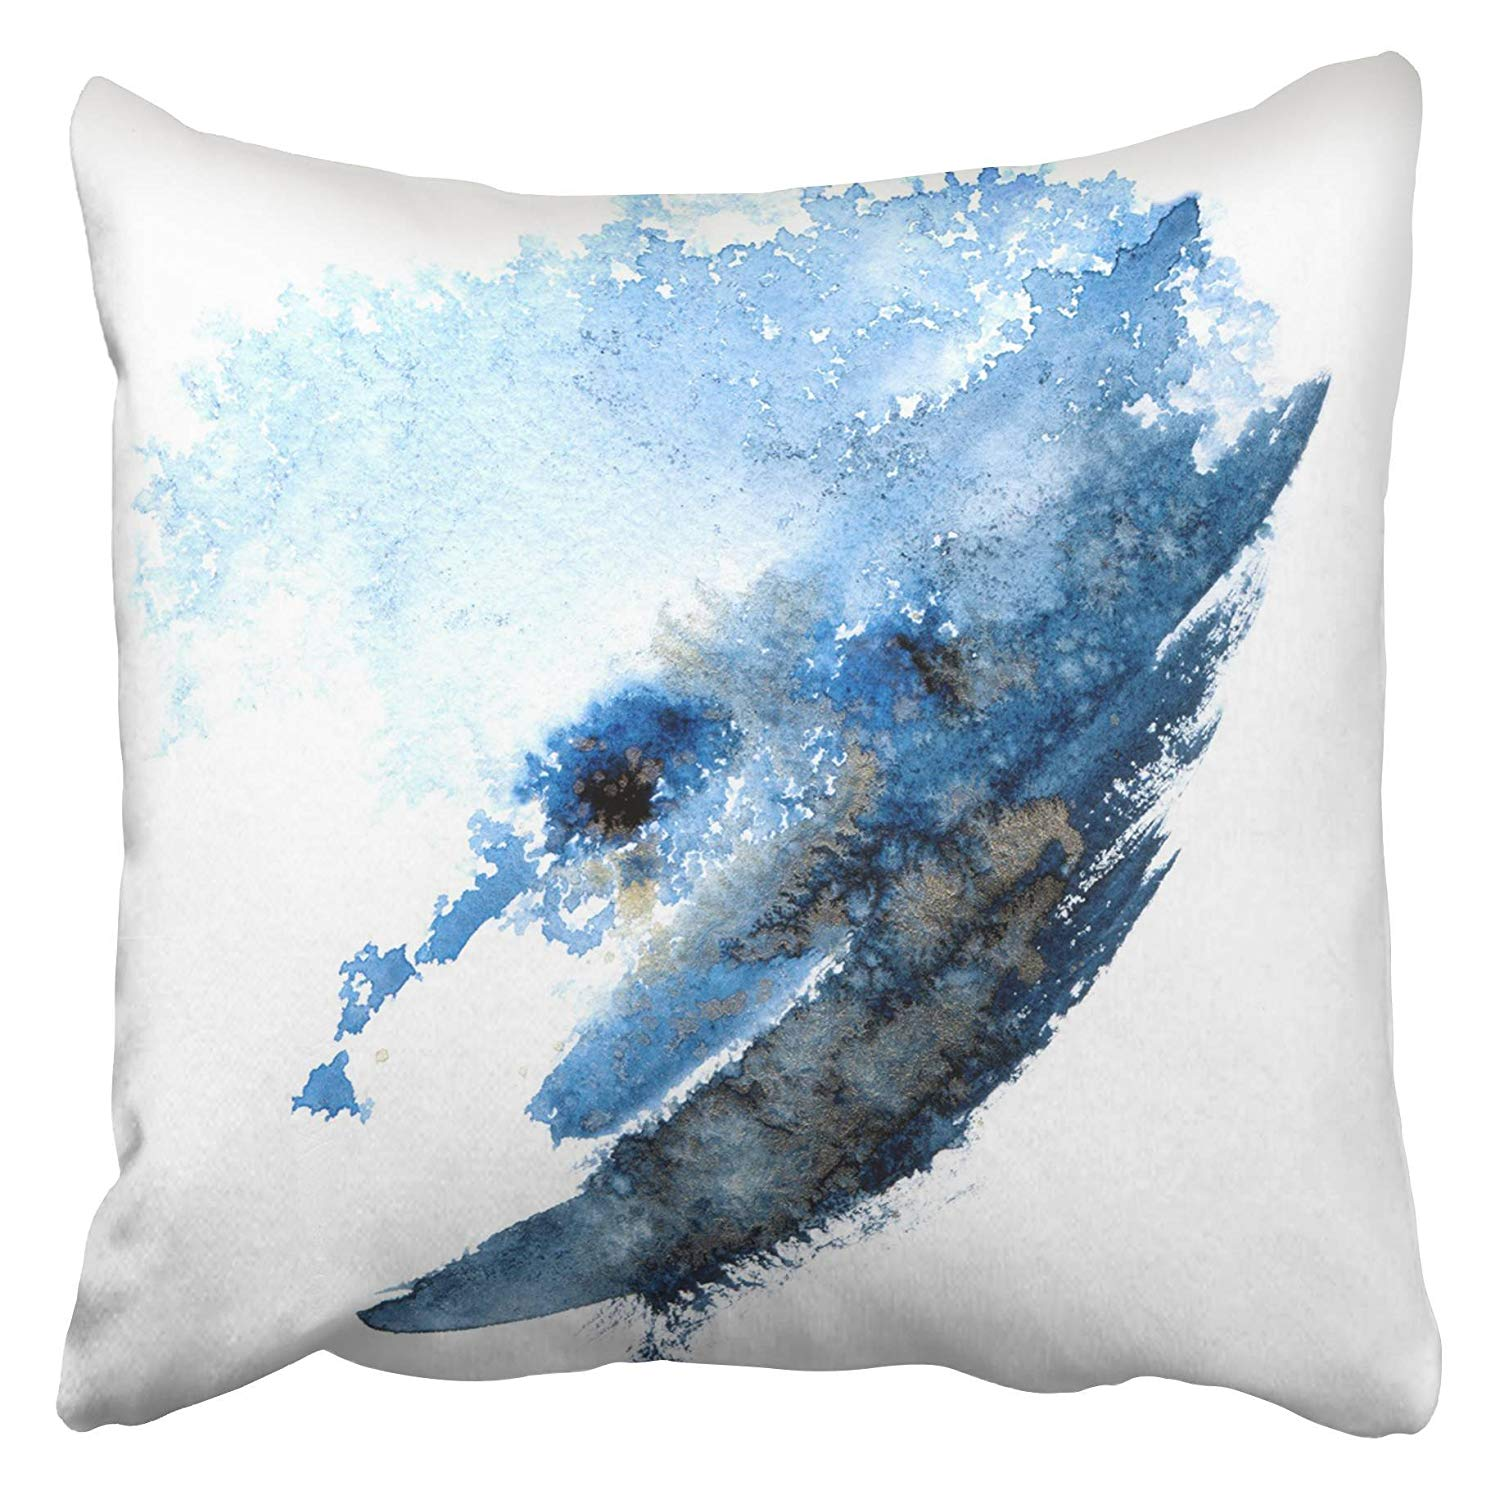 USART Dye Blue Watercolor Abstract with Gold Indigo Tie Artistic Batik Color Graphic Ink Pillow Case Cushion Cover 18x18 inch